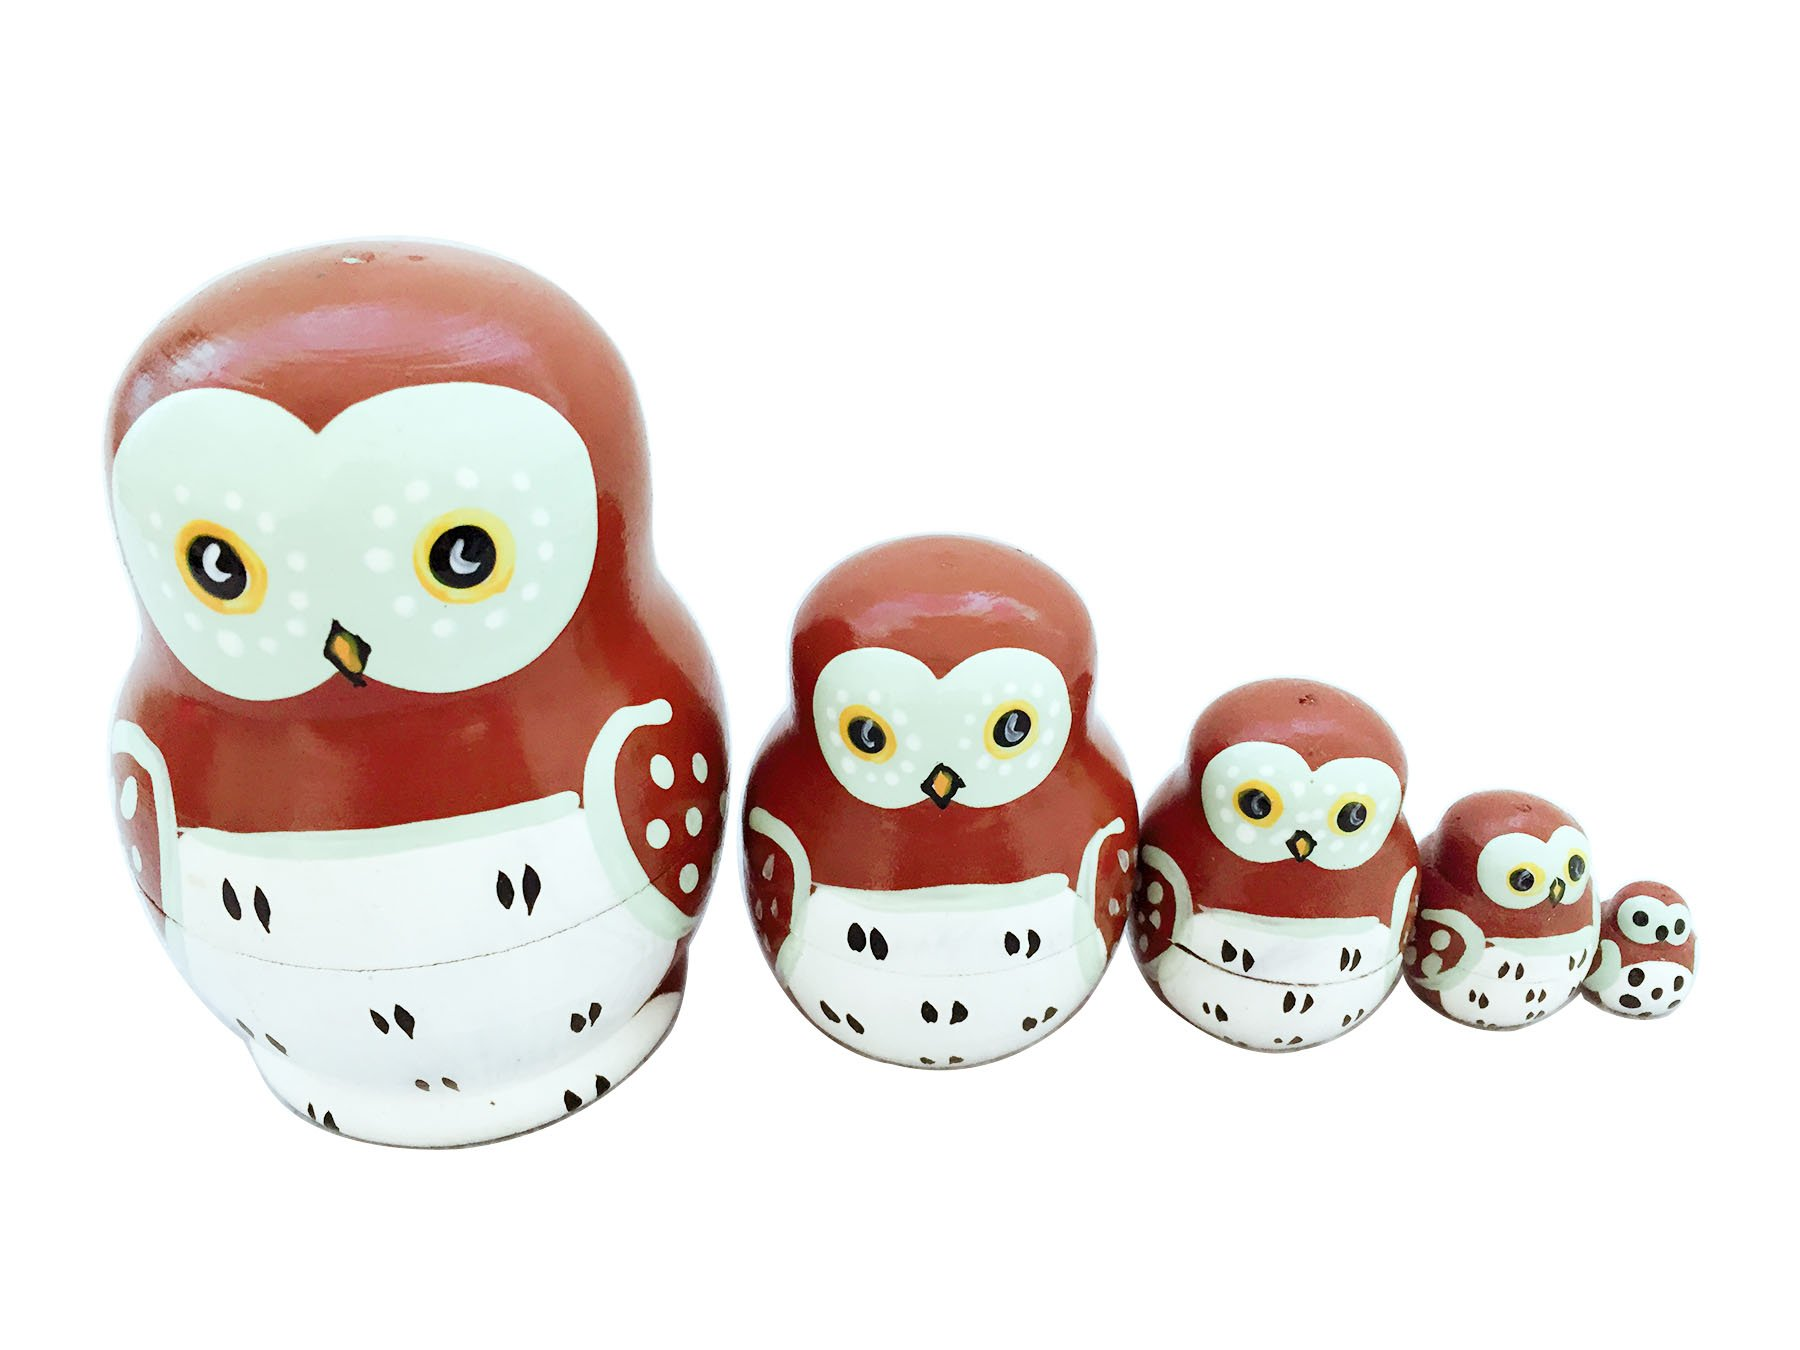 xqing Matryoshka Russian Doll Lovely Mini Animal Theme Wise Smart Owl Nesting Dolls Handmade Set of 5 Perfect for Kids Girl Christmas Birthday Gift Home Decorations